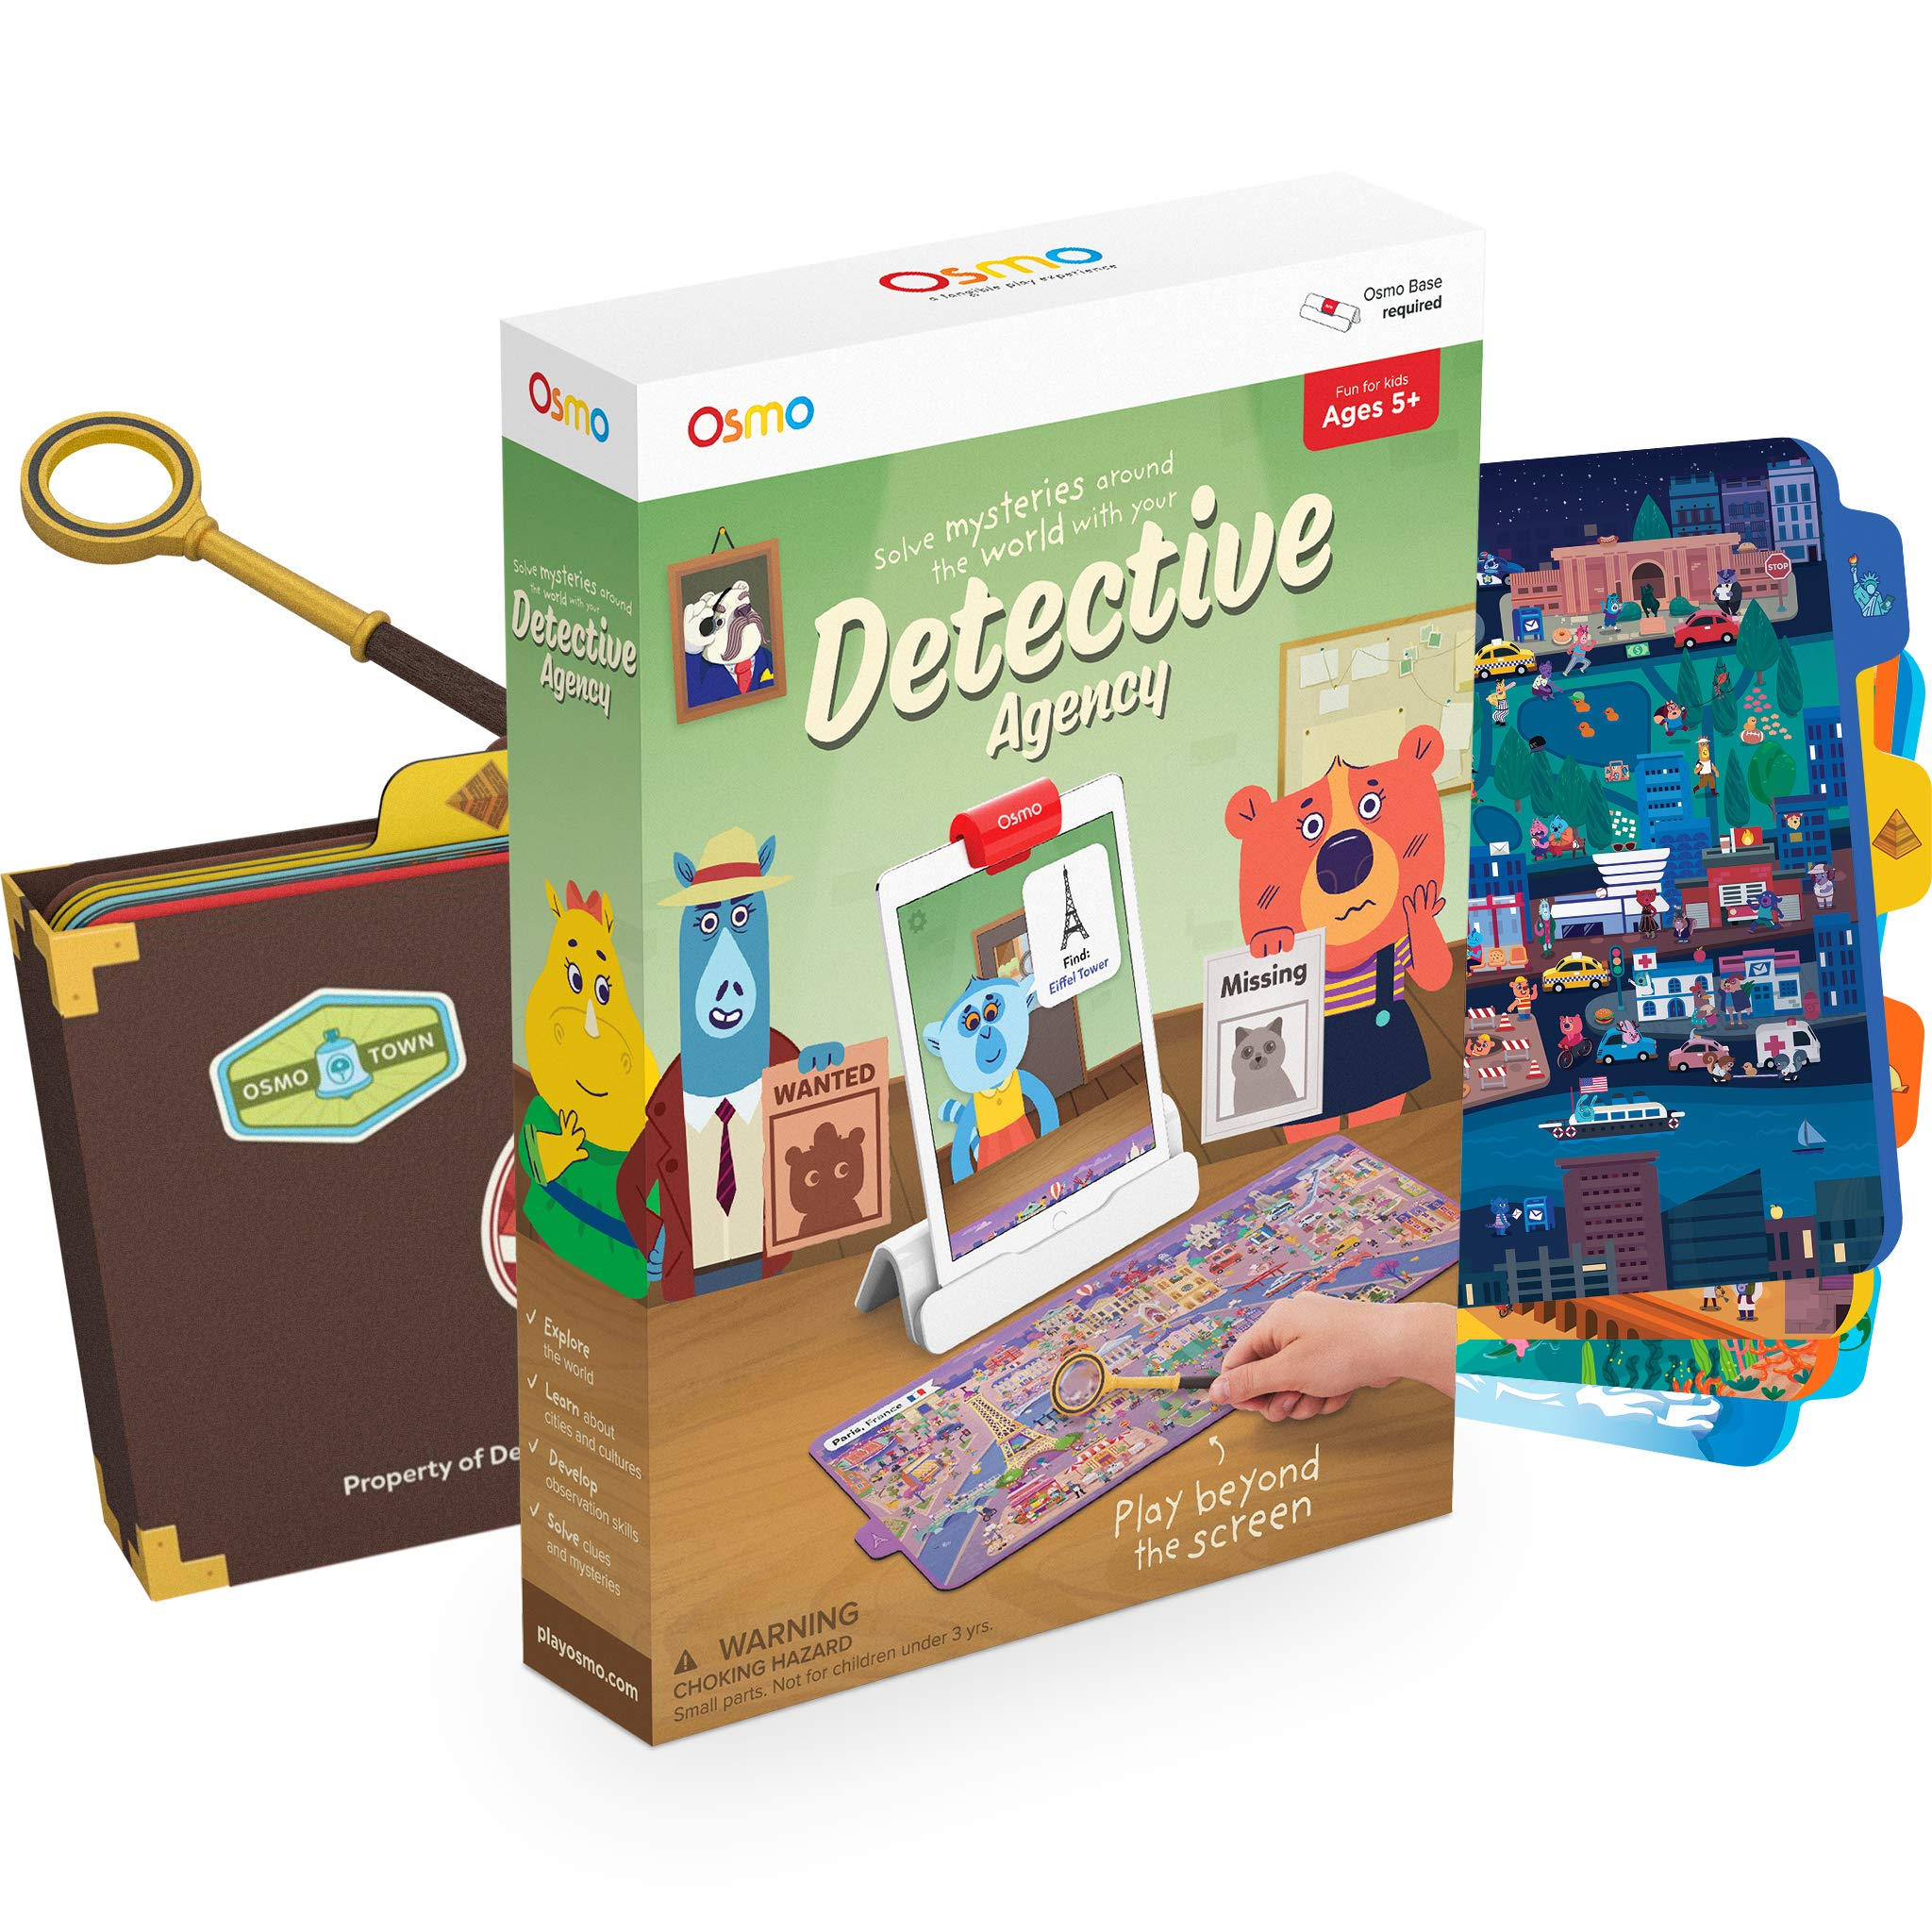 Osmo - Detective Agency: A Search & Find Mystery Game - Ages 5-12 - Explore The World - For iPad and Fire Tablet (Osmo Base Required) by Osmo (Image #1)